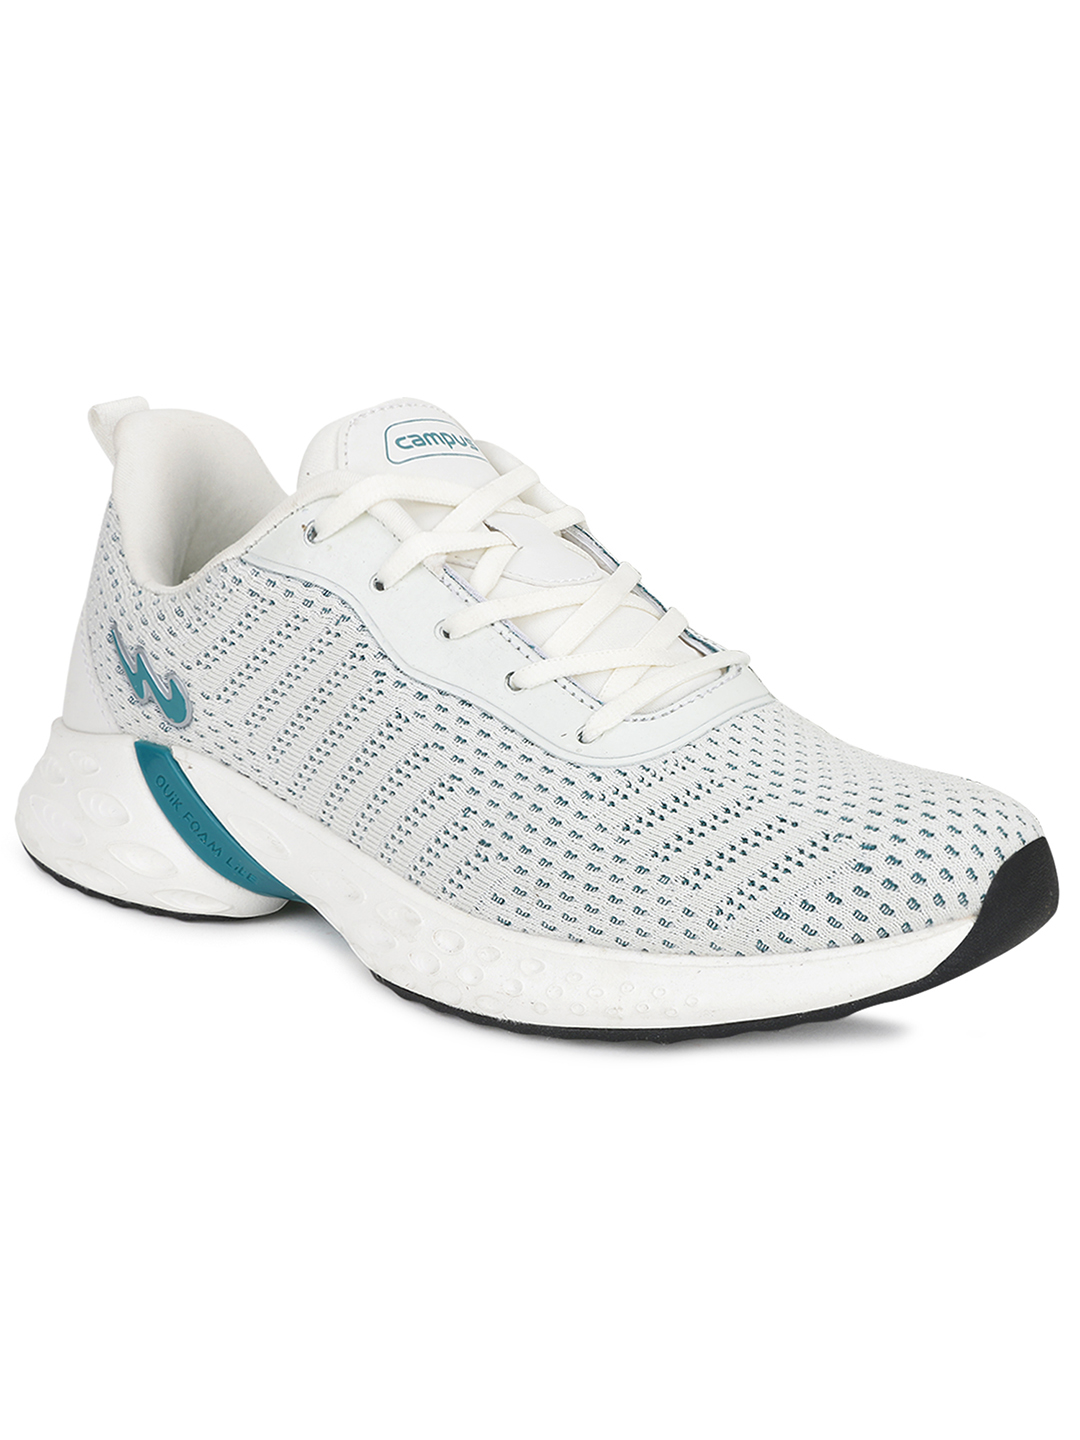 Campus Shoes | White Shawn Running Shoes